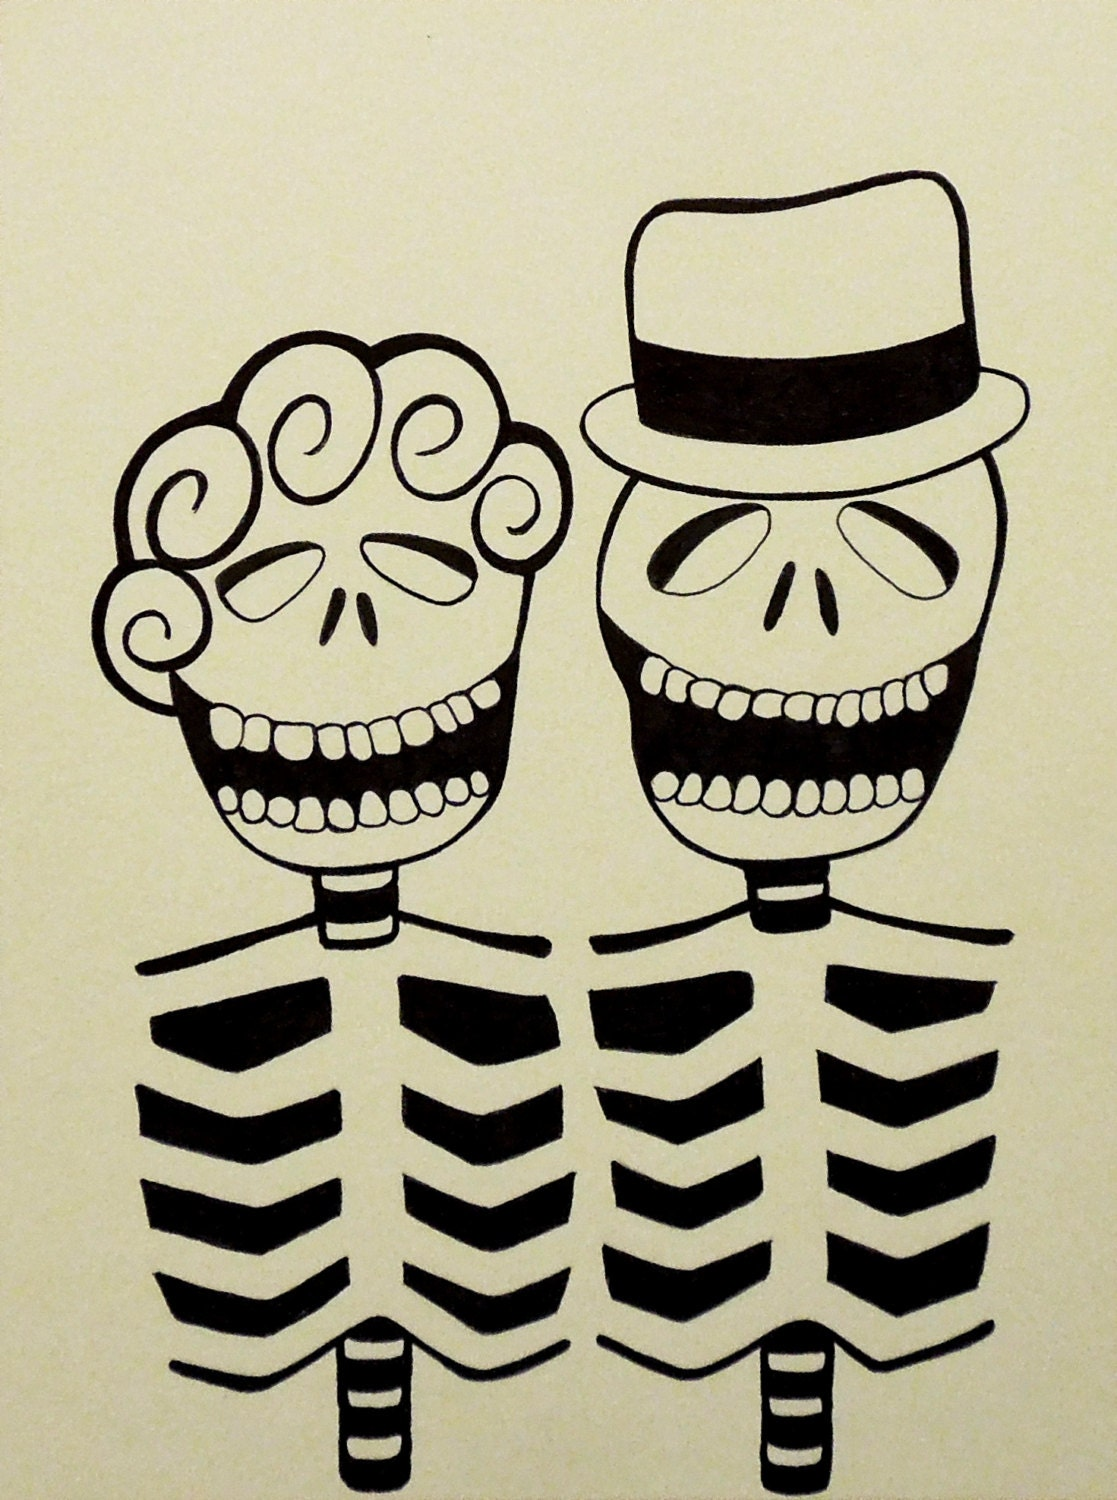 Skeleton Couple Day of the Dead Dia de los Muertos Mexican